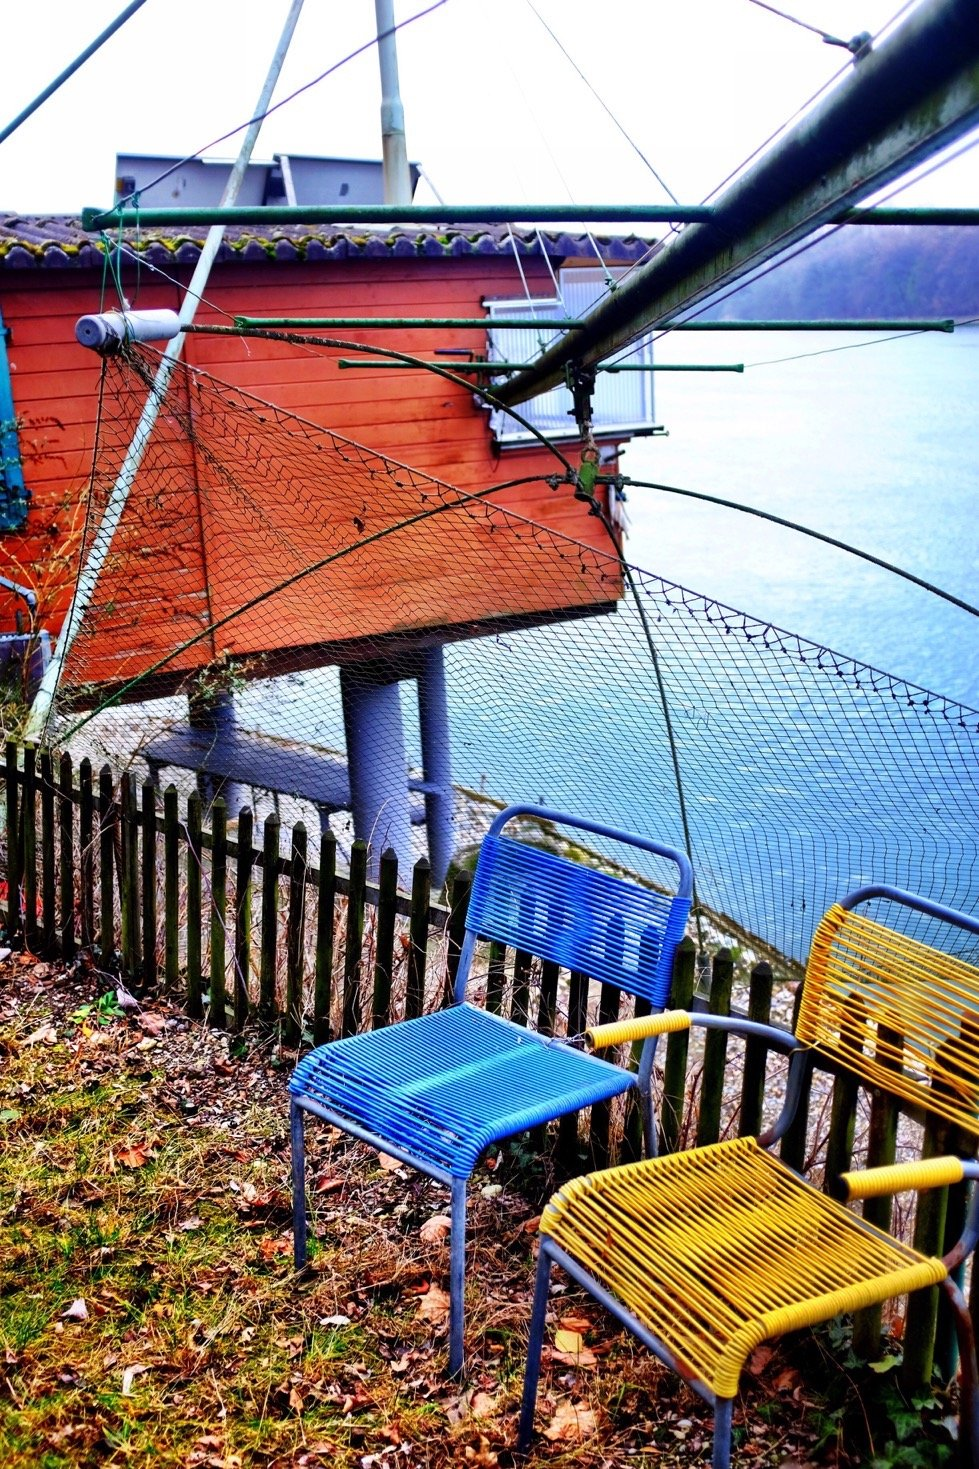 Some colorful chairs in the front of a traditional fishing hut